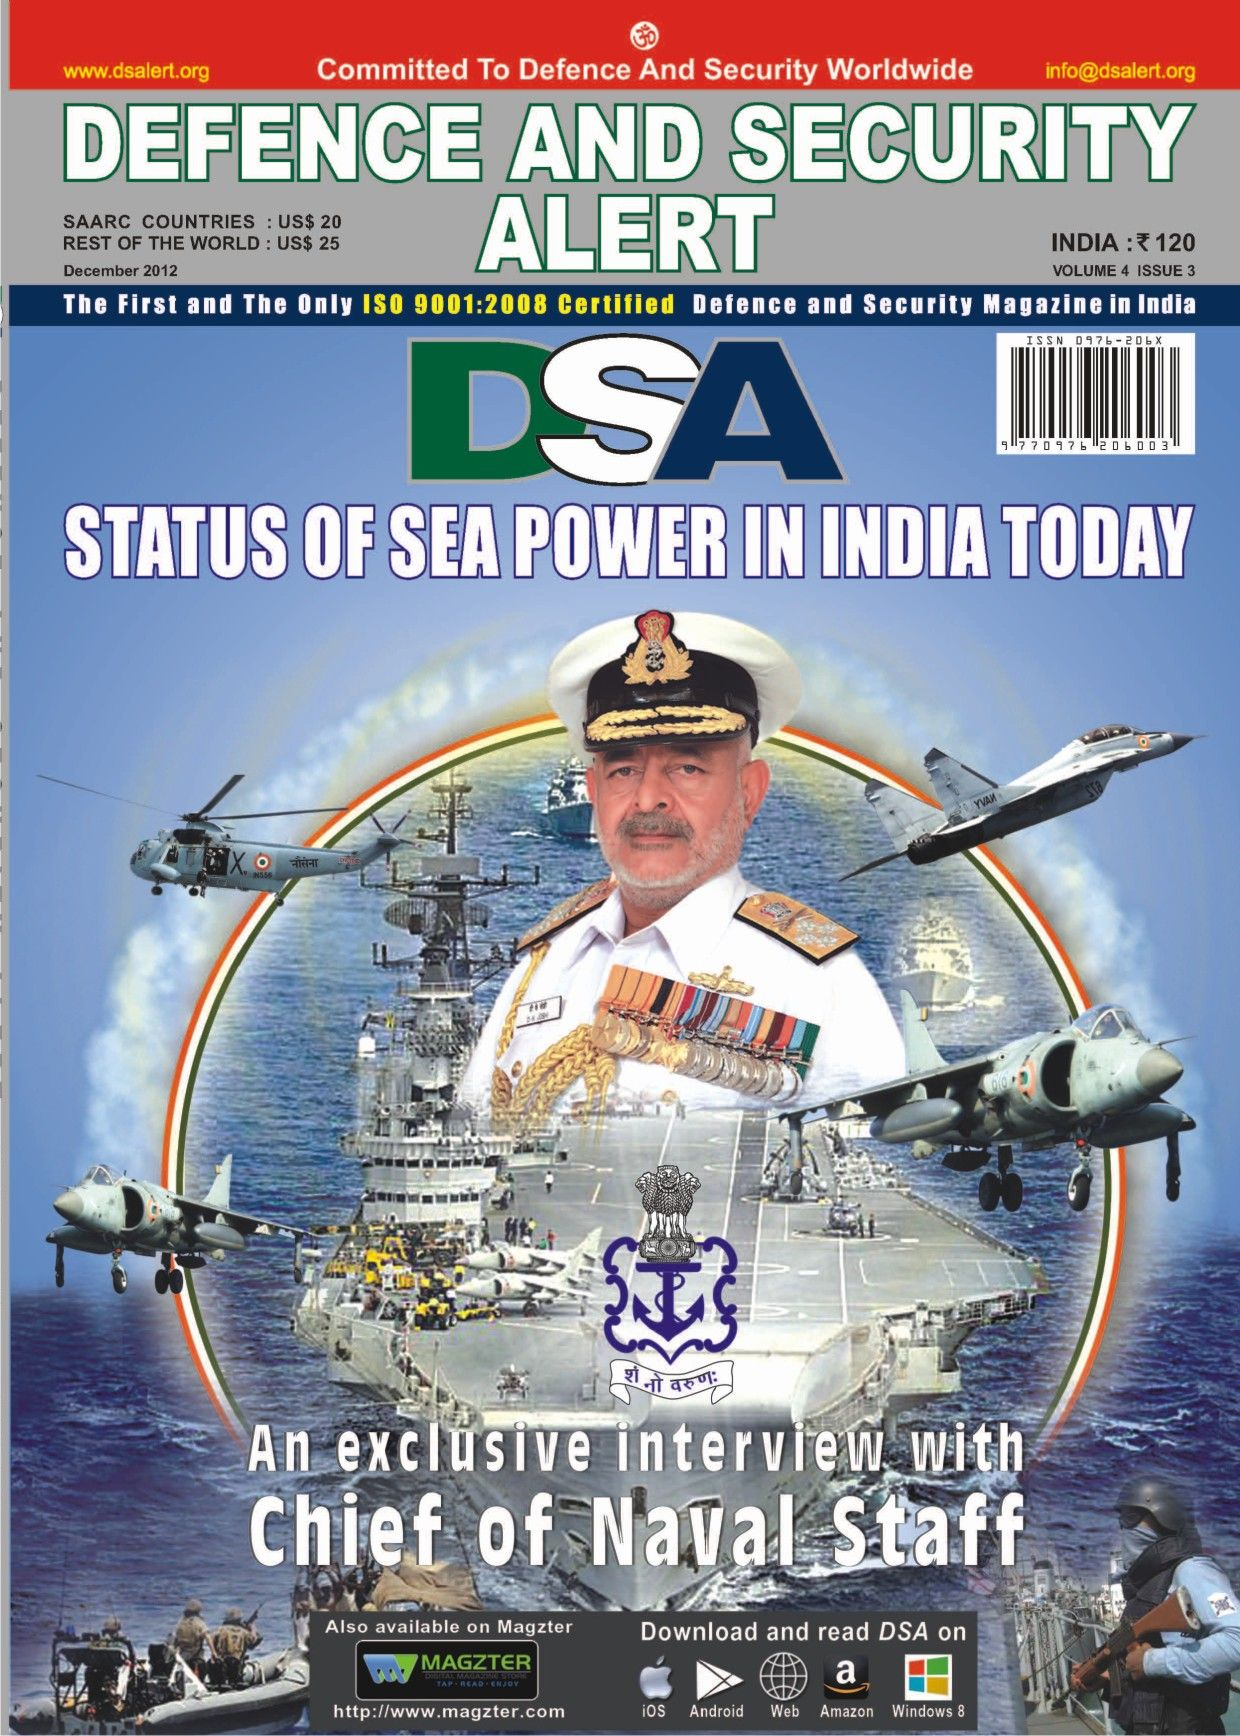 4 Dsa Magazine Global Defence Aerospace Aviation And Military Database Security Articles News Featuring Technology